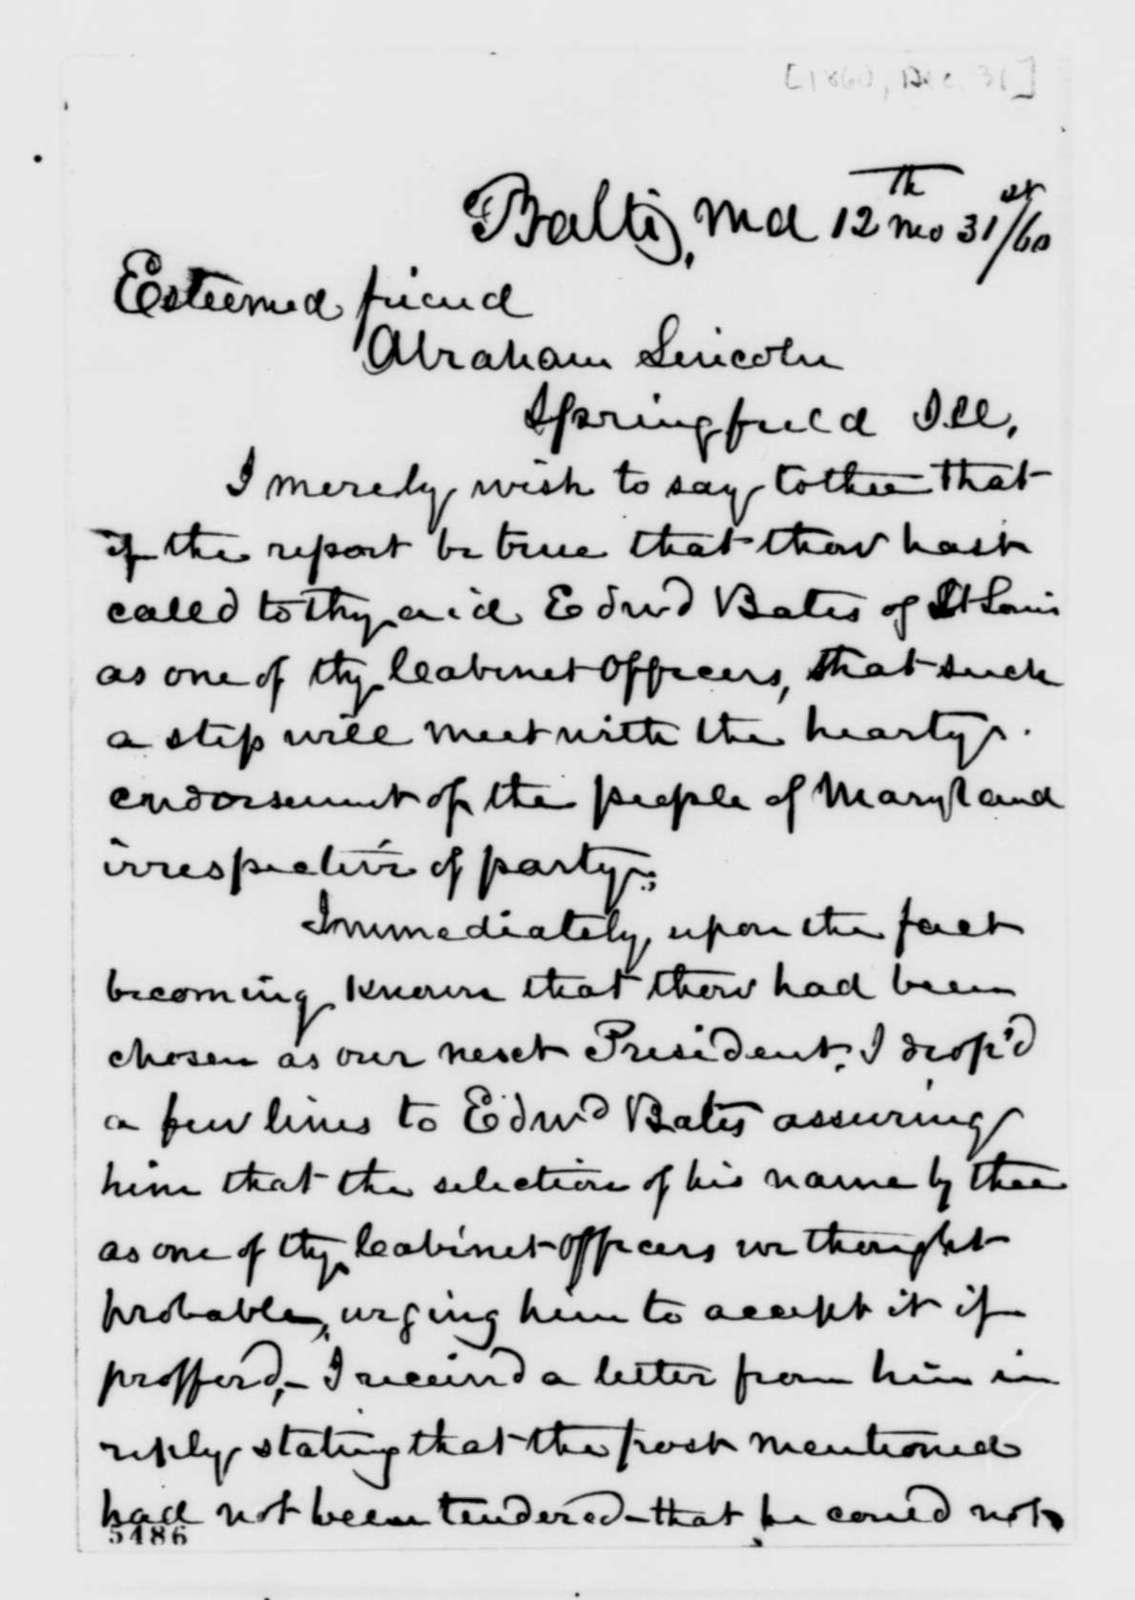 Francis S. Corkran to Abraham Lincoln, Monday, December 31, 1860  (Cabinet appointments)